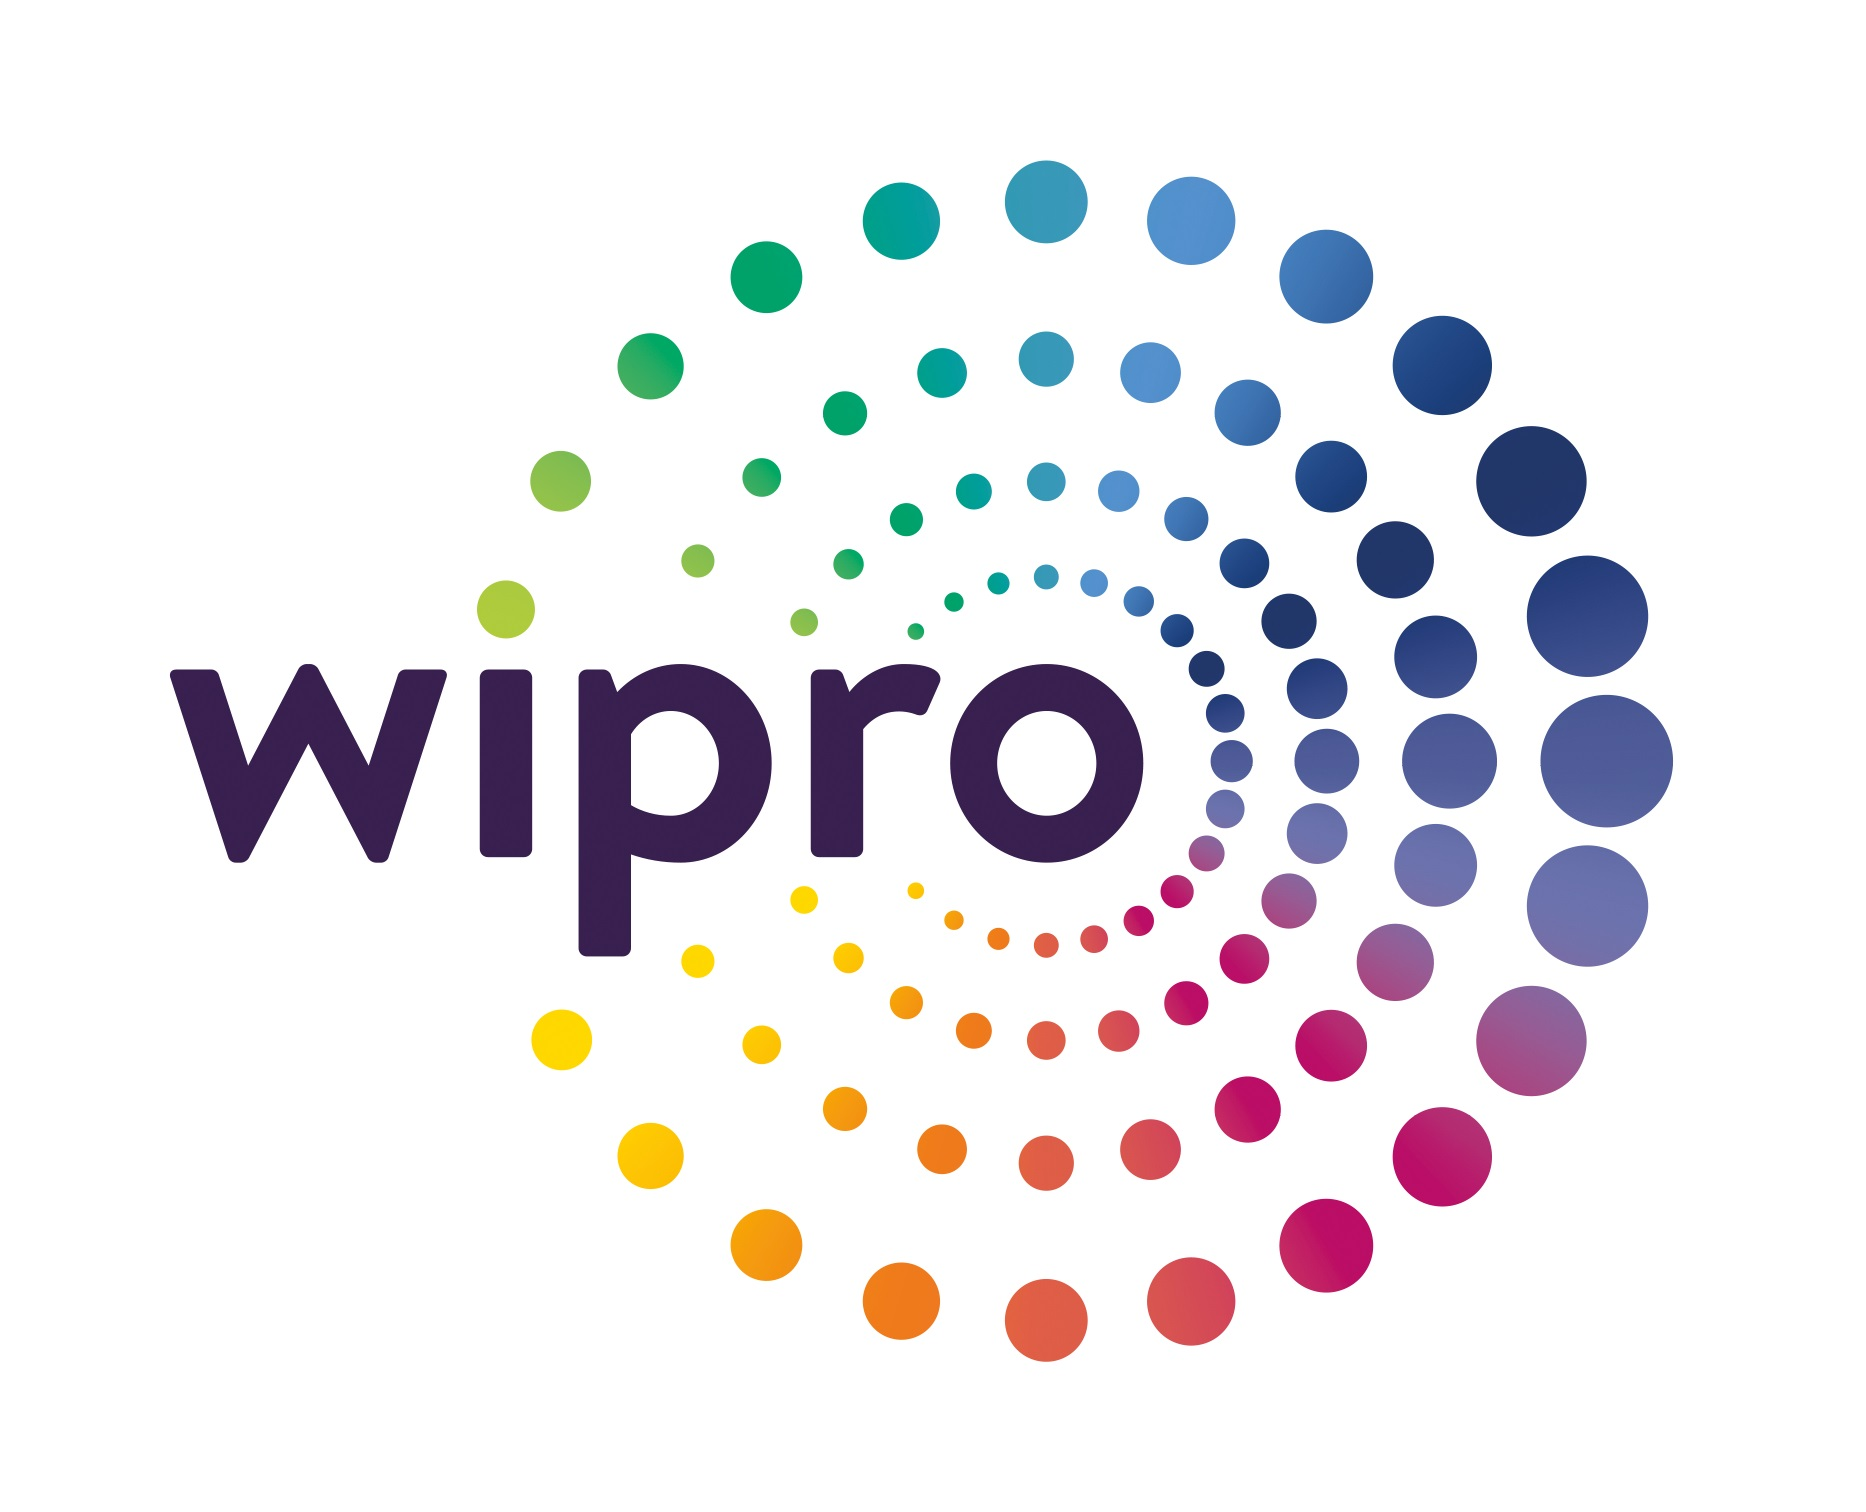 About WIPRO